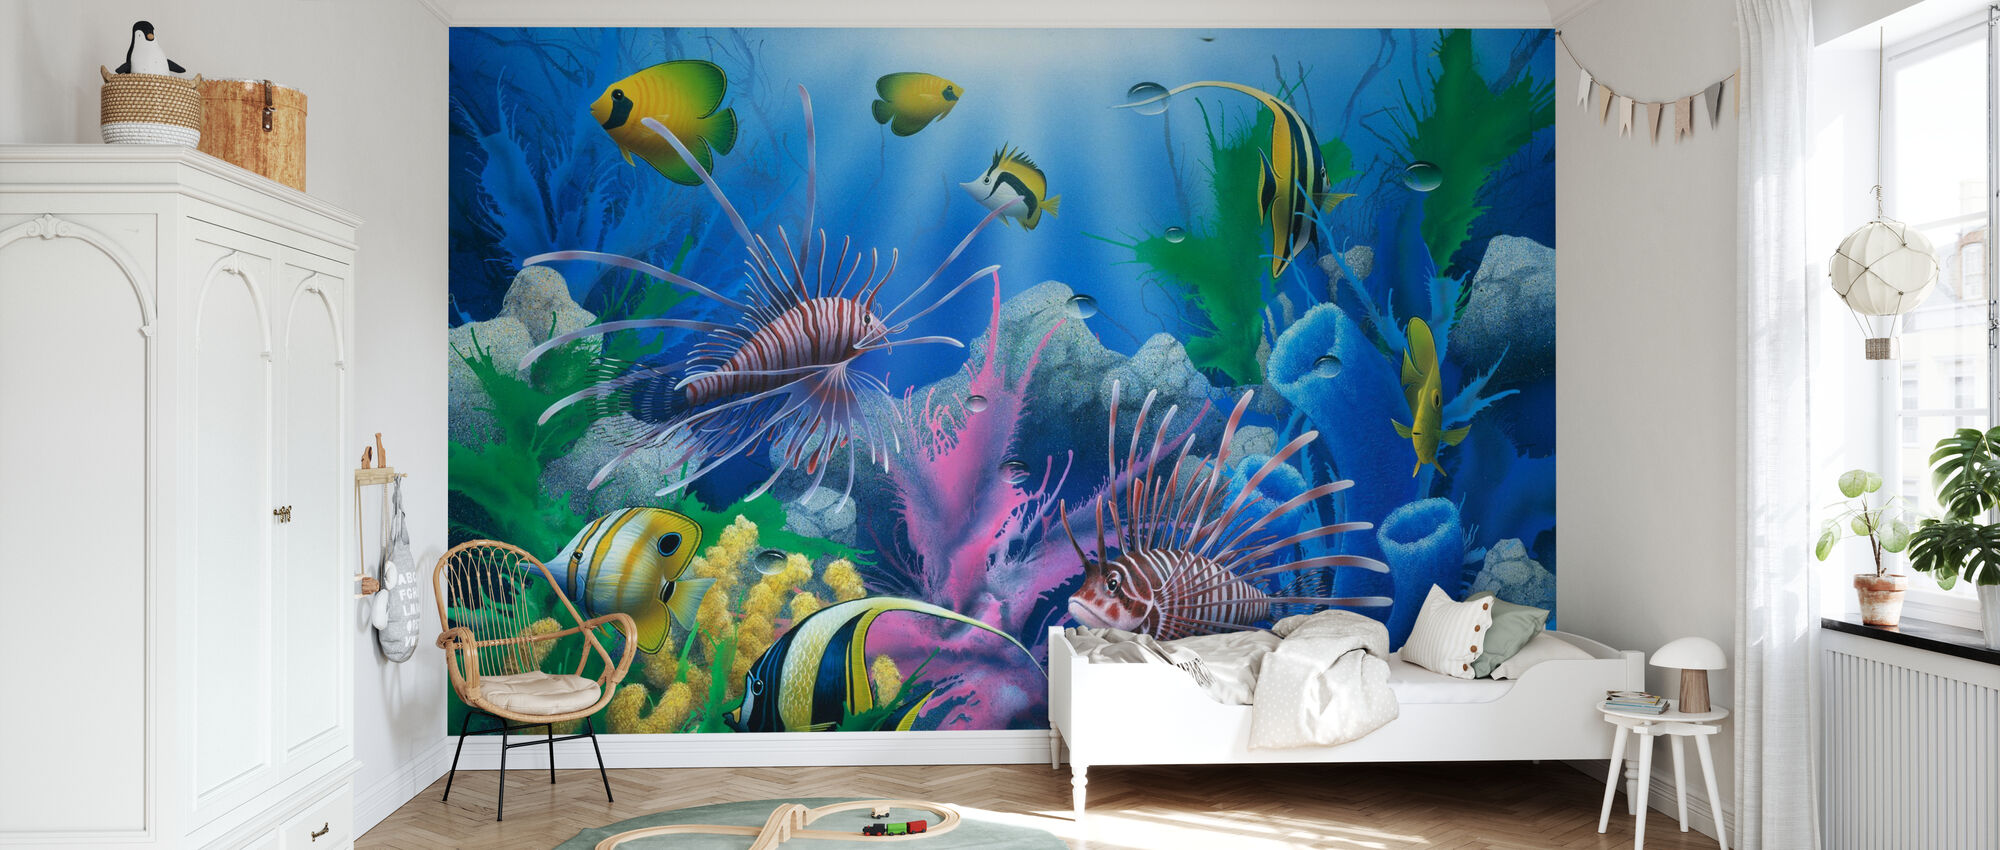 Lions of the Sea - Wallpaper - Kids Room